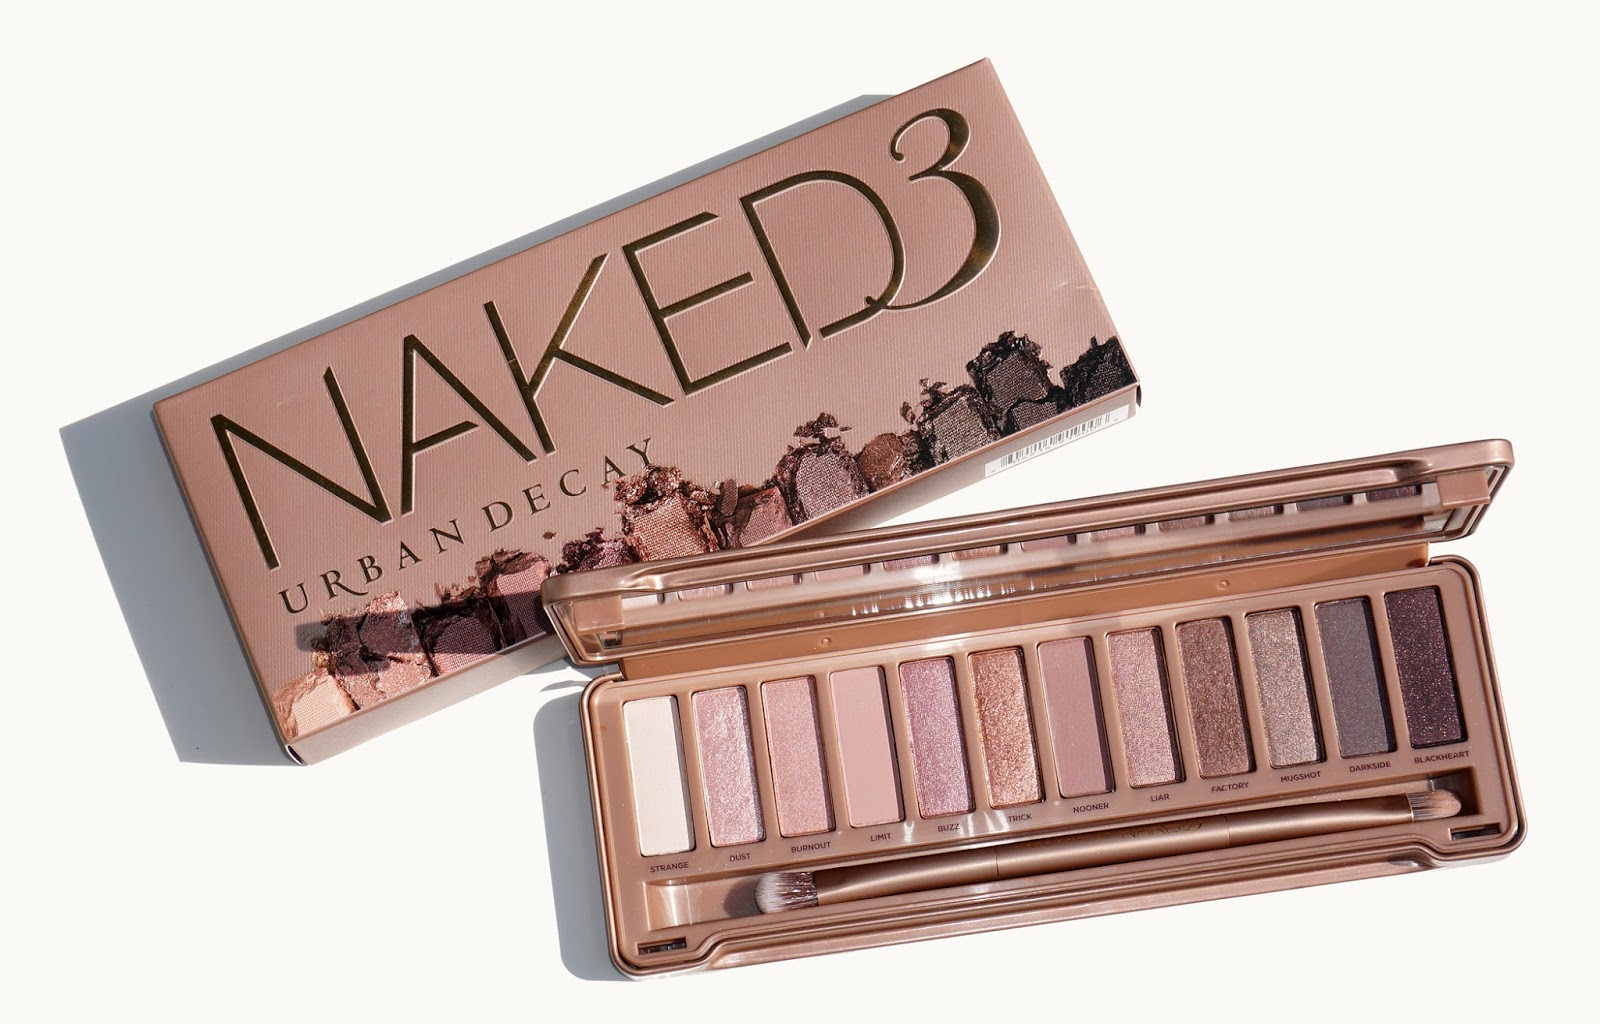 urban decay naked3 palette the beauty look book. Black Bedroom Furniture Sets. Home Design Ideas